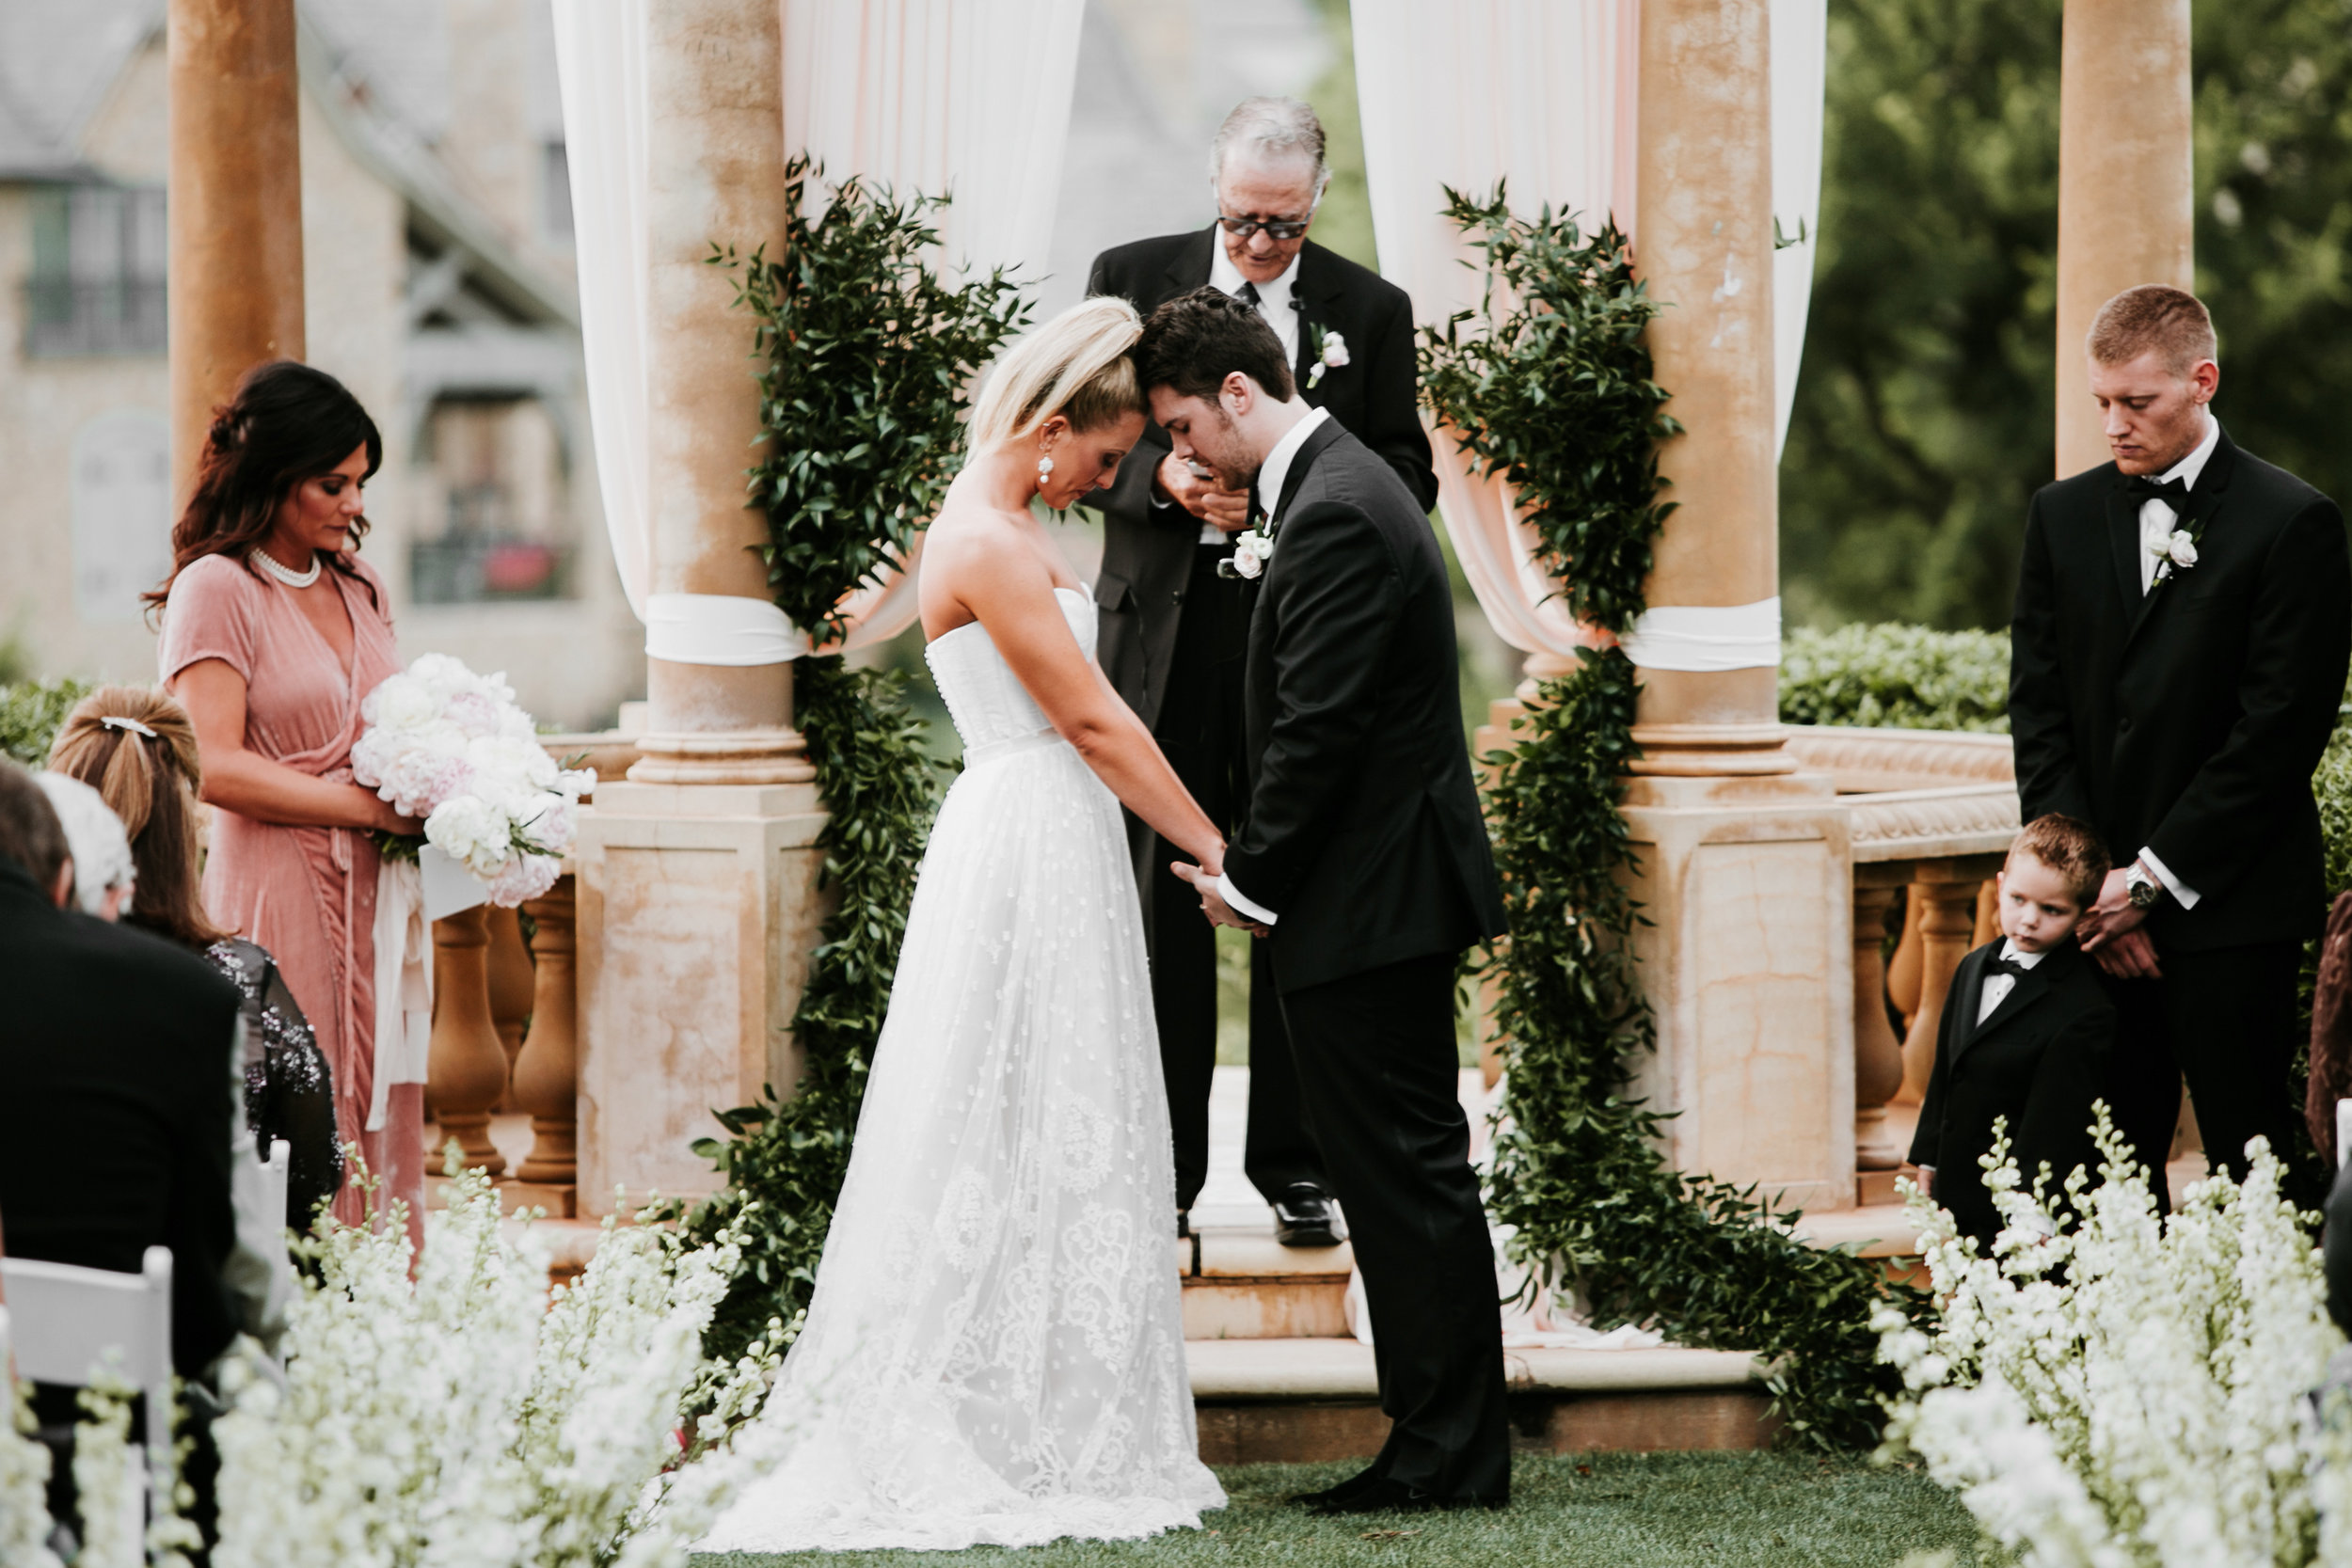 Photography/Videography by CHOATE HOUSE, Flowers by XO, Tabletop Rentals and Design by Fete, Chargers/Tables/Draping by Mood Party Rentals, Cake by Andrea Howard Cakes, Venue - Gaillardia Country Club